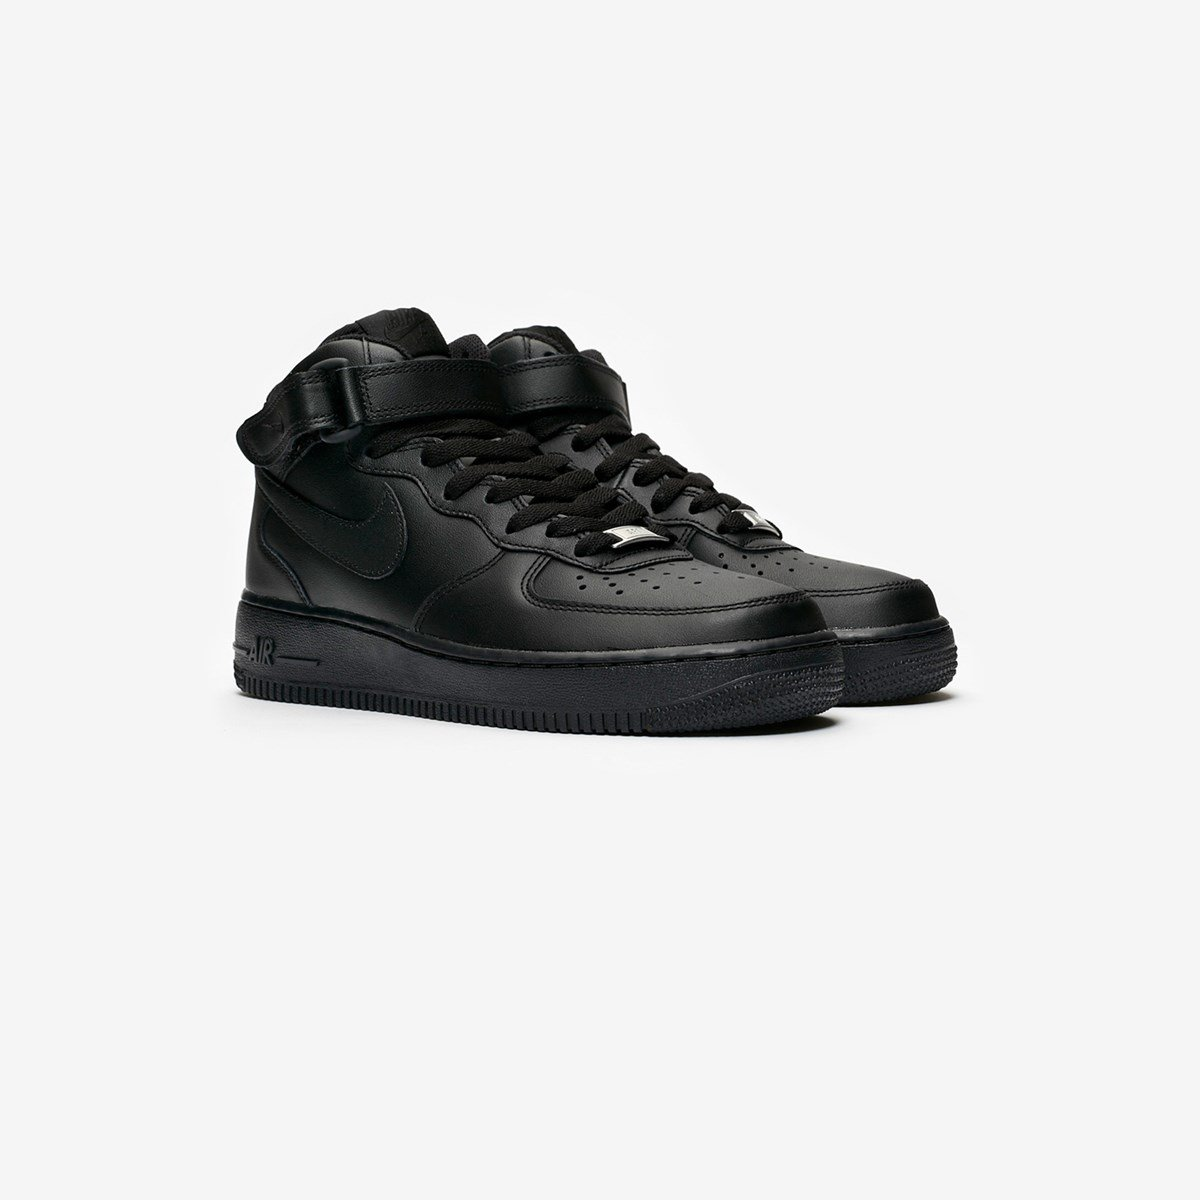 Nike Wmns Air Force 1 Mid 07 LE - 366731-001 - SNS   sneakers & streetwear online since 1999